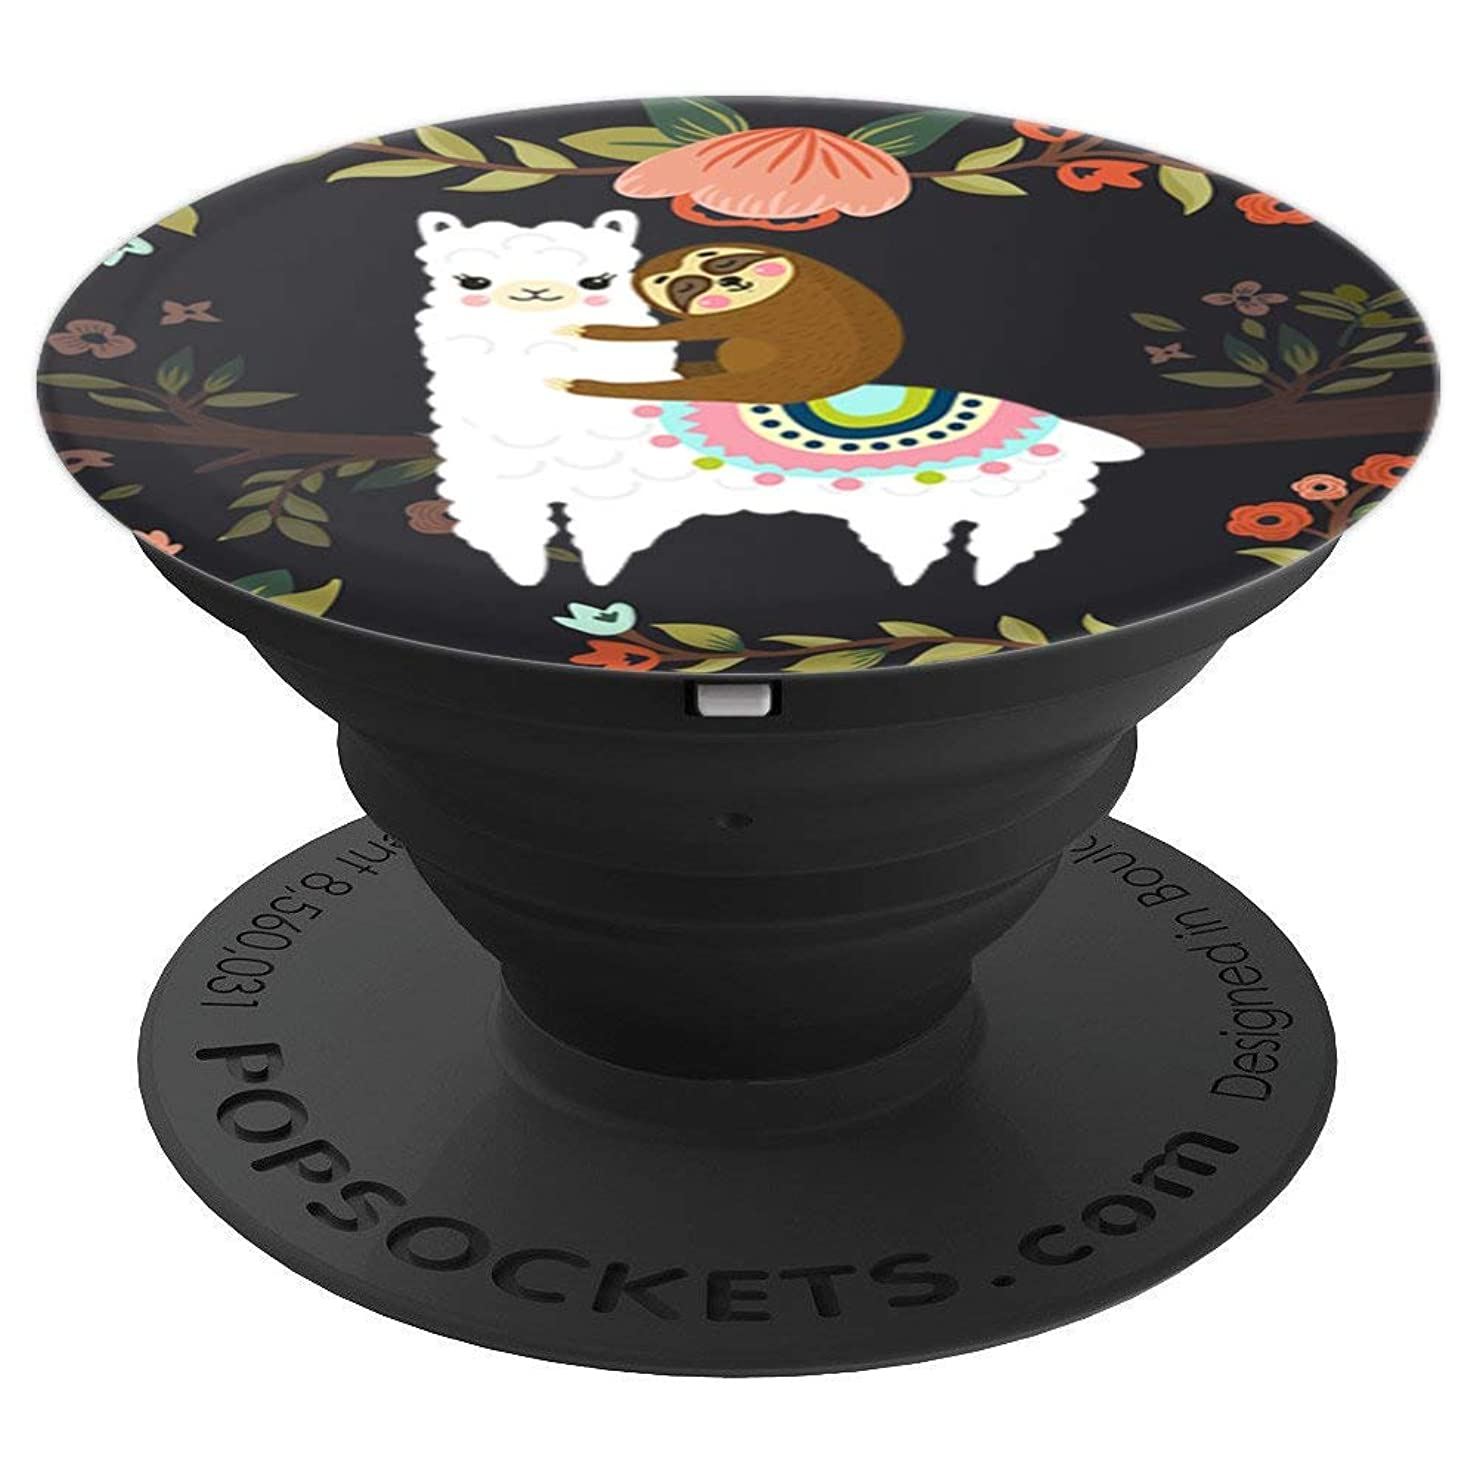 Cute Sloth llama - PopSockets Grip and Stand for Phones and Tablets